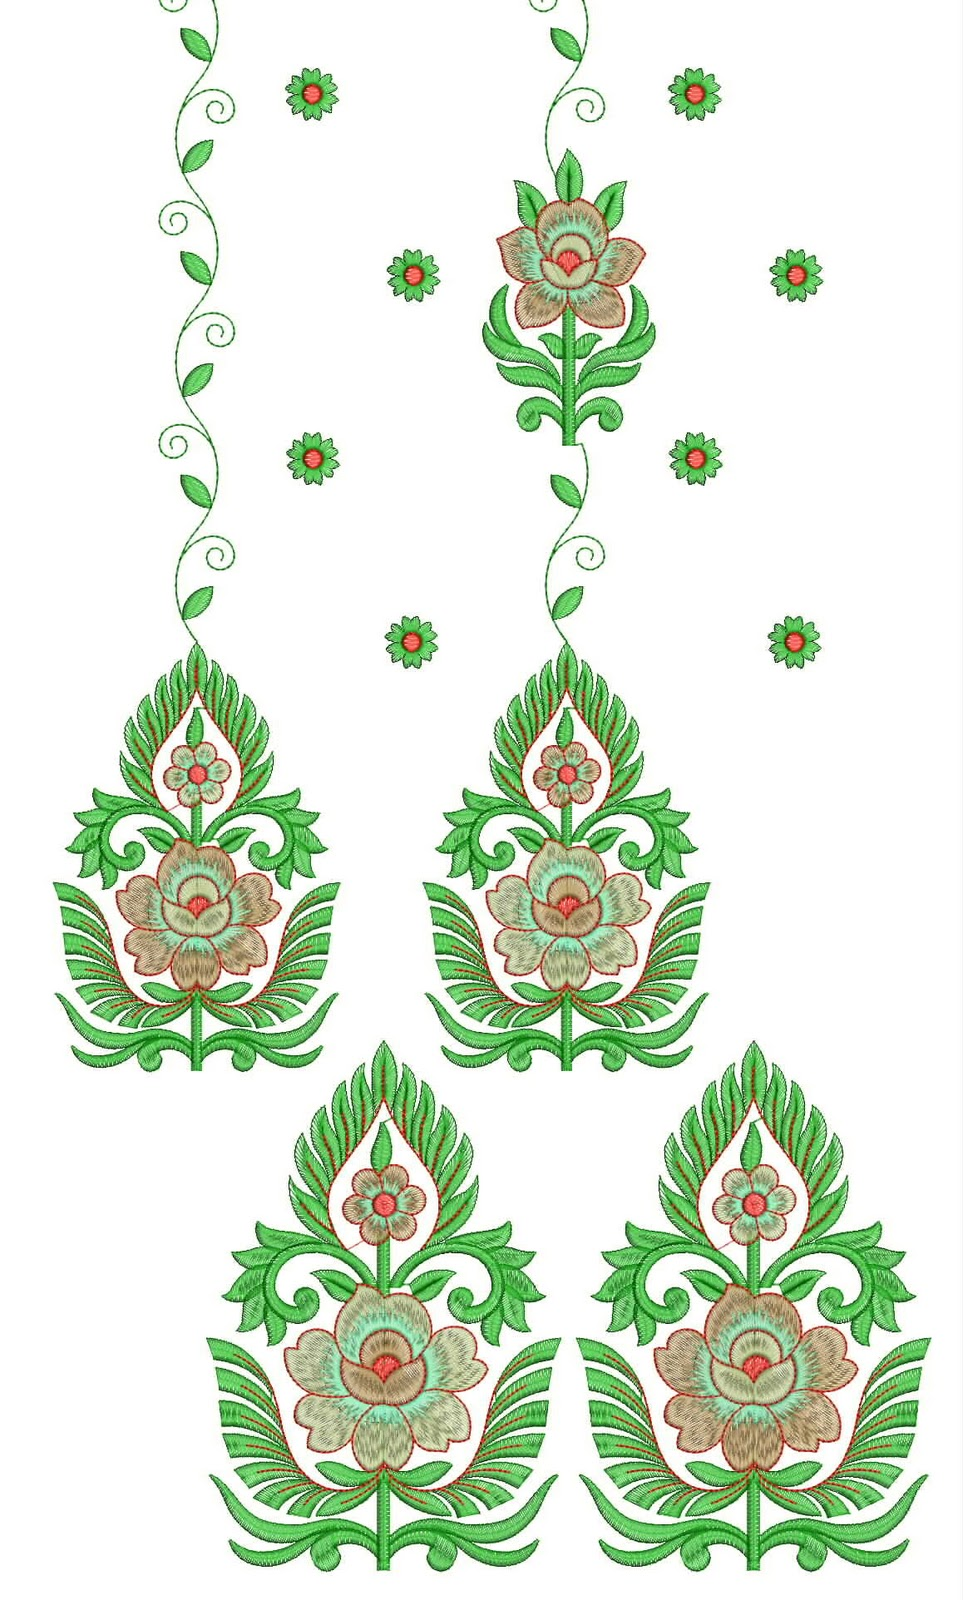 Embdesigntube daman top dupatta embroidery design